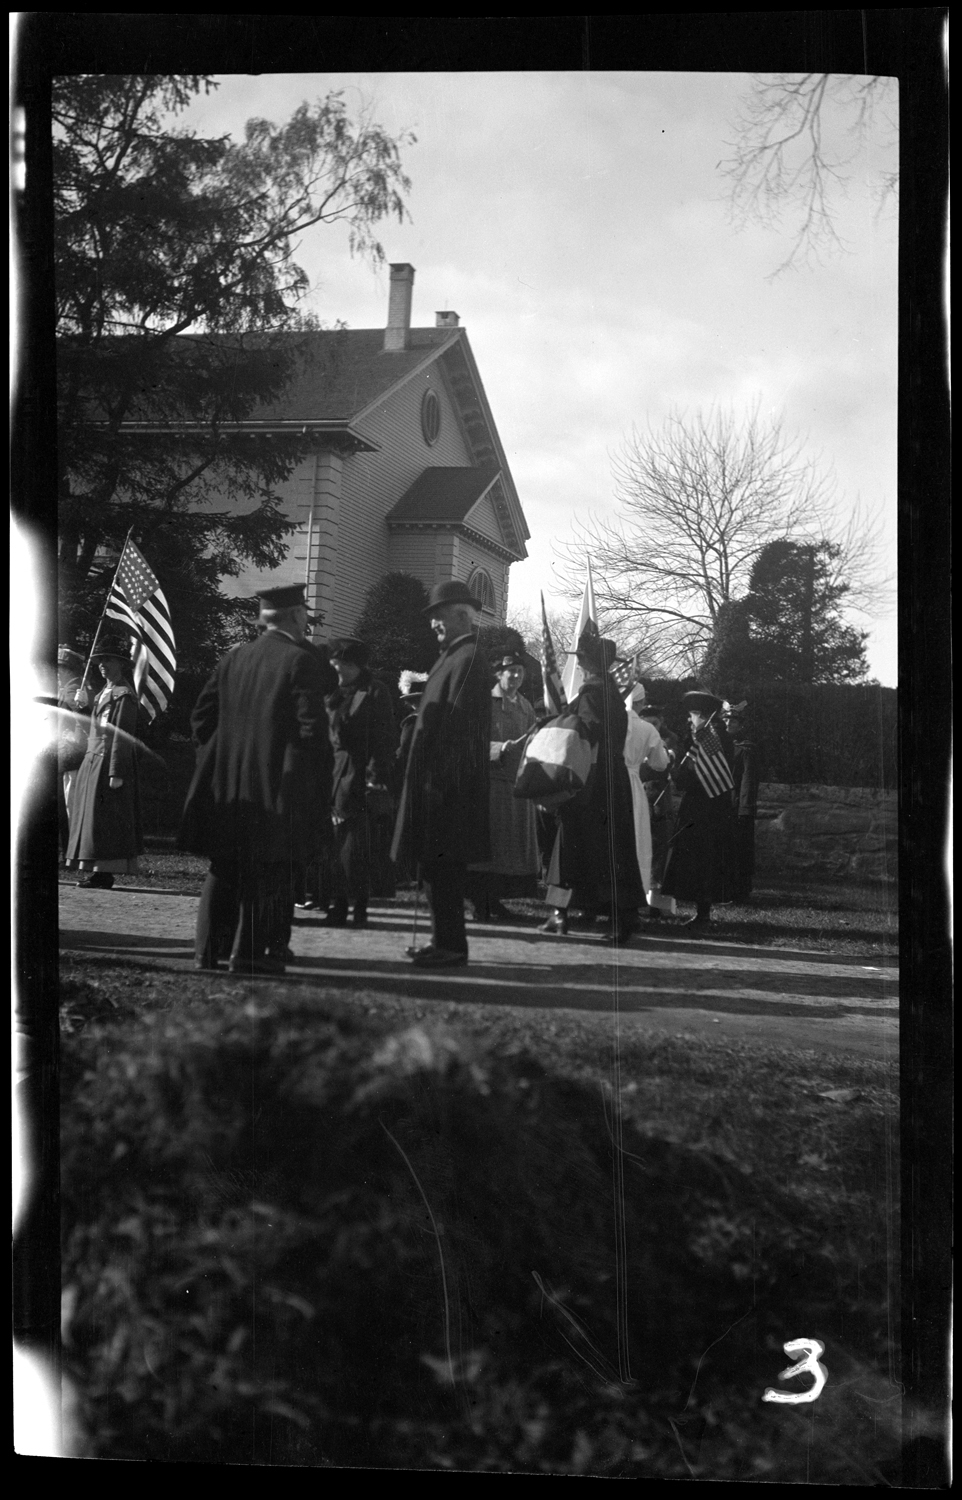 Spectators at the Welcome Home parade, October 18, 1919.